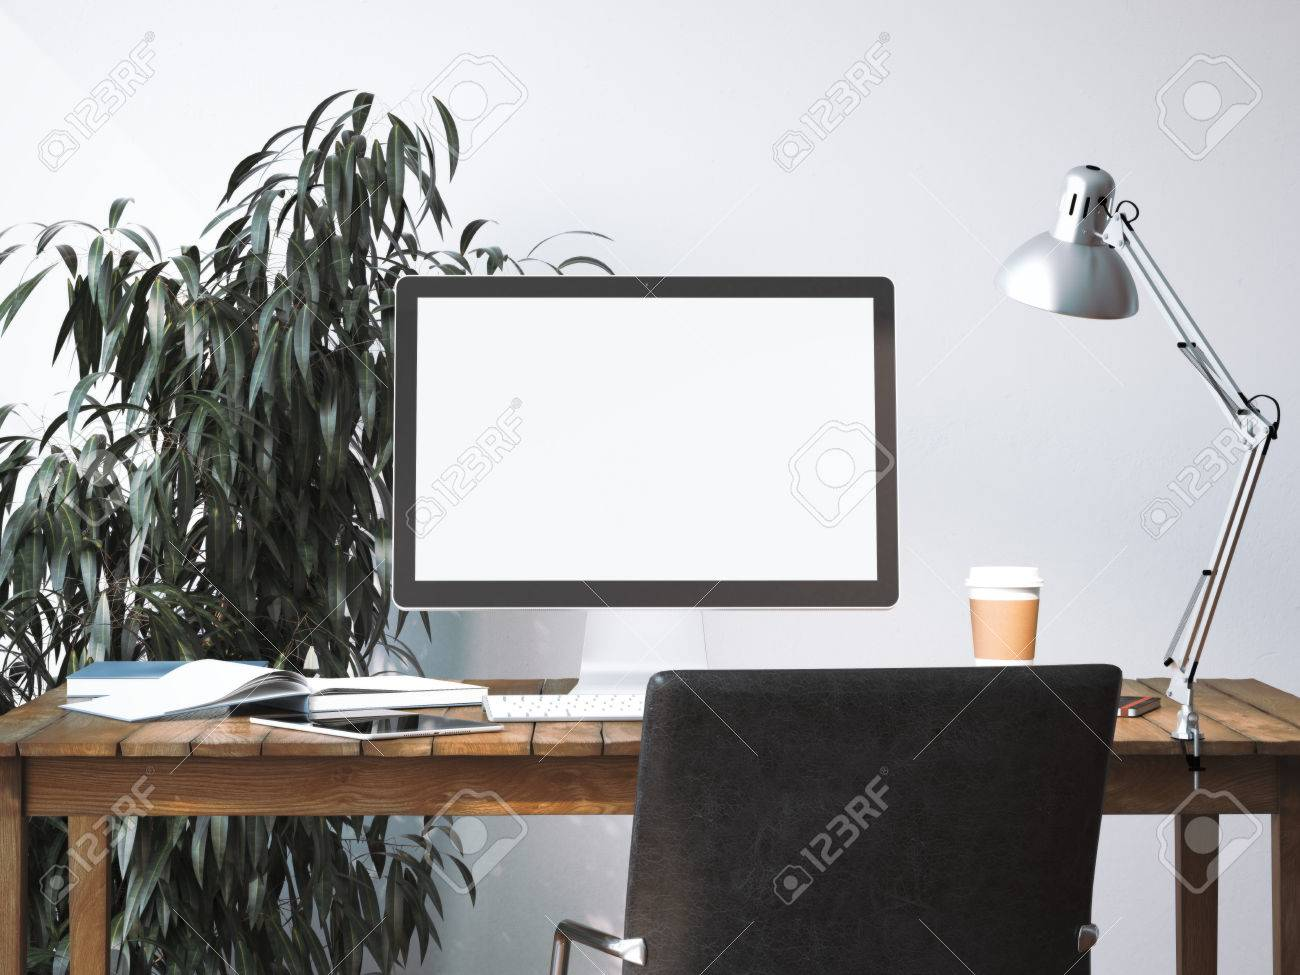 Workspace with blank screen on a wooden table. 3d rendering - 62488631